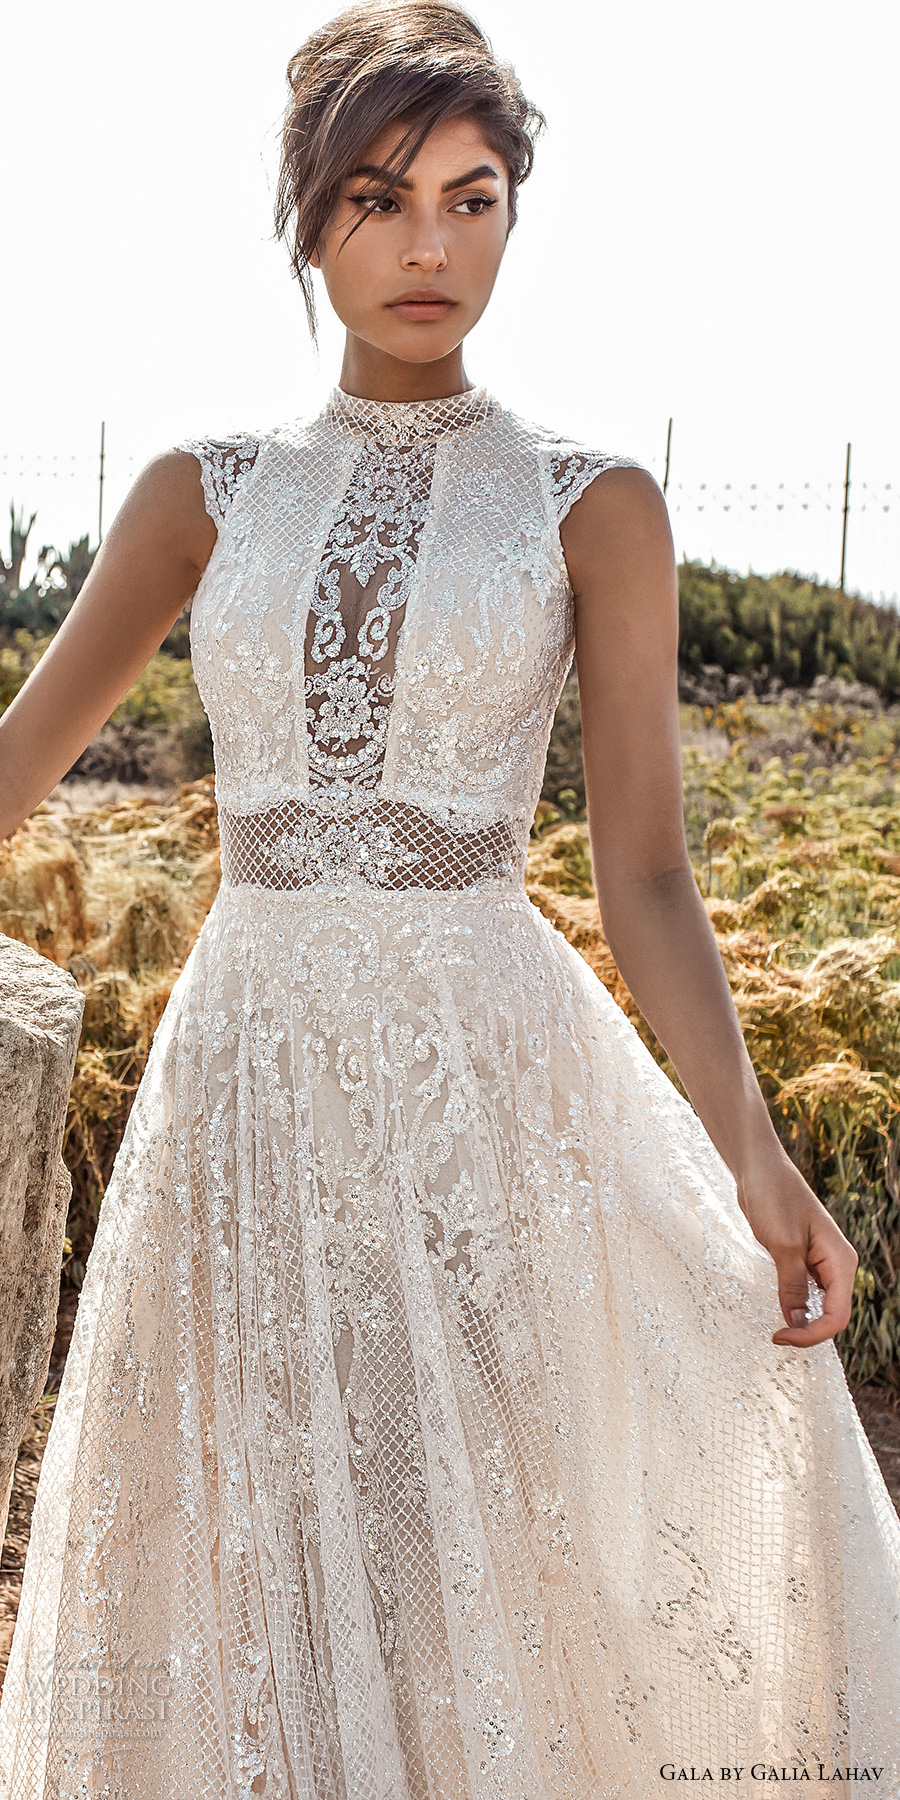 galia lahav gala 2017 bridal cap sleeves high jewel neck full embellishment beaded crystals romantic glamorous a line wedding dress open low back chapel train (803) zv